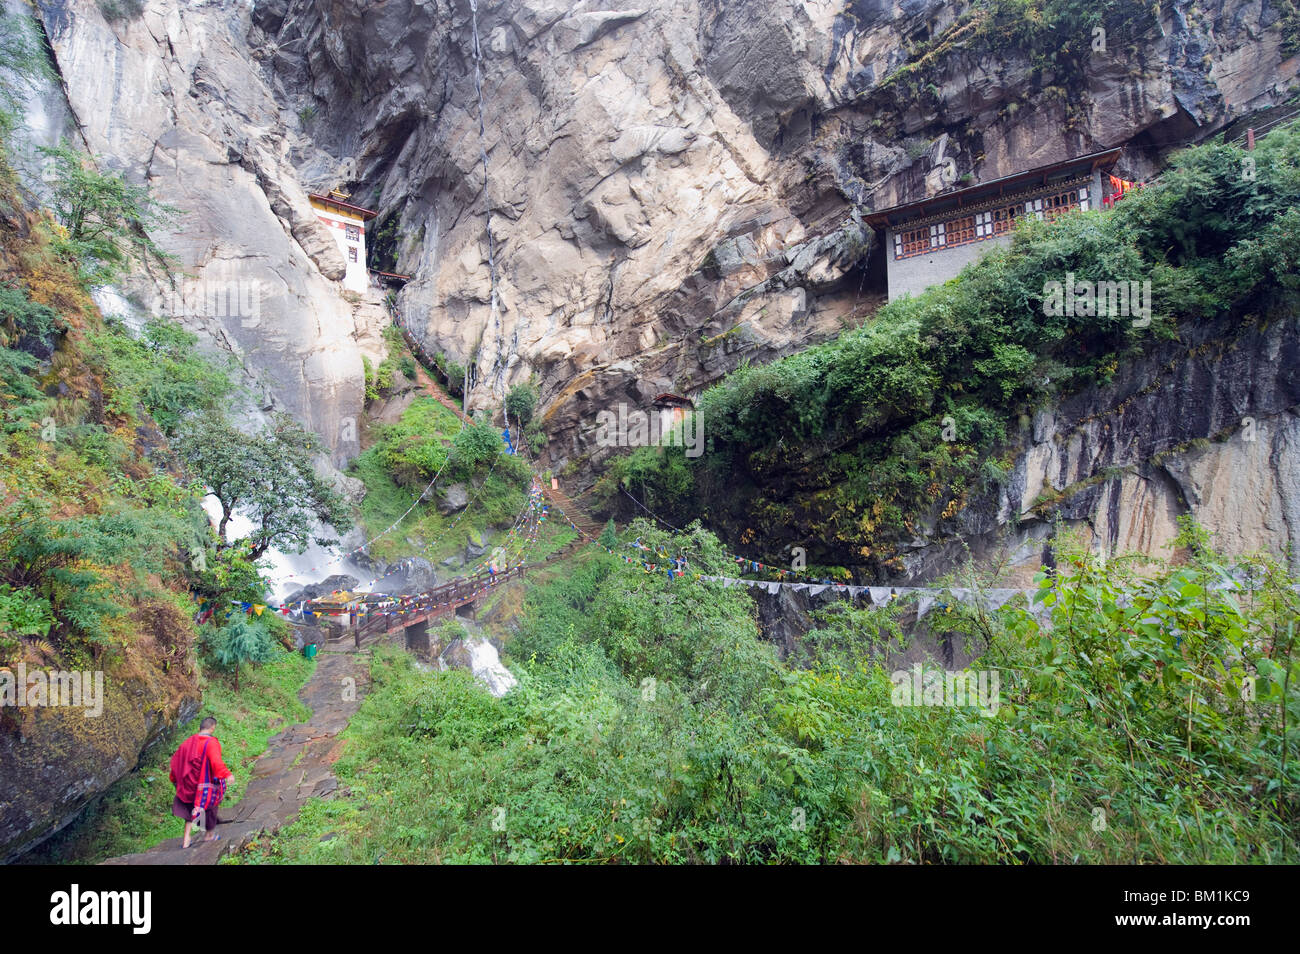 A monk on his way to Tigers Nest (Taktsang Goemba), Paro Valley, Bhutan, Asia - Stock Image